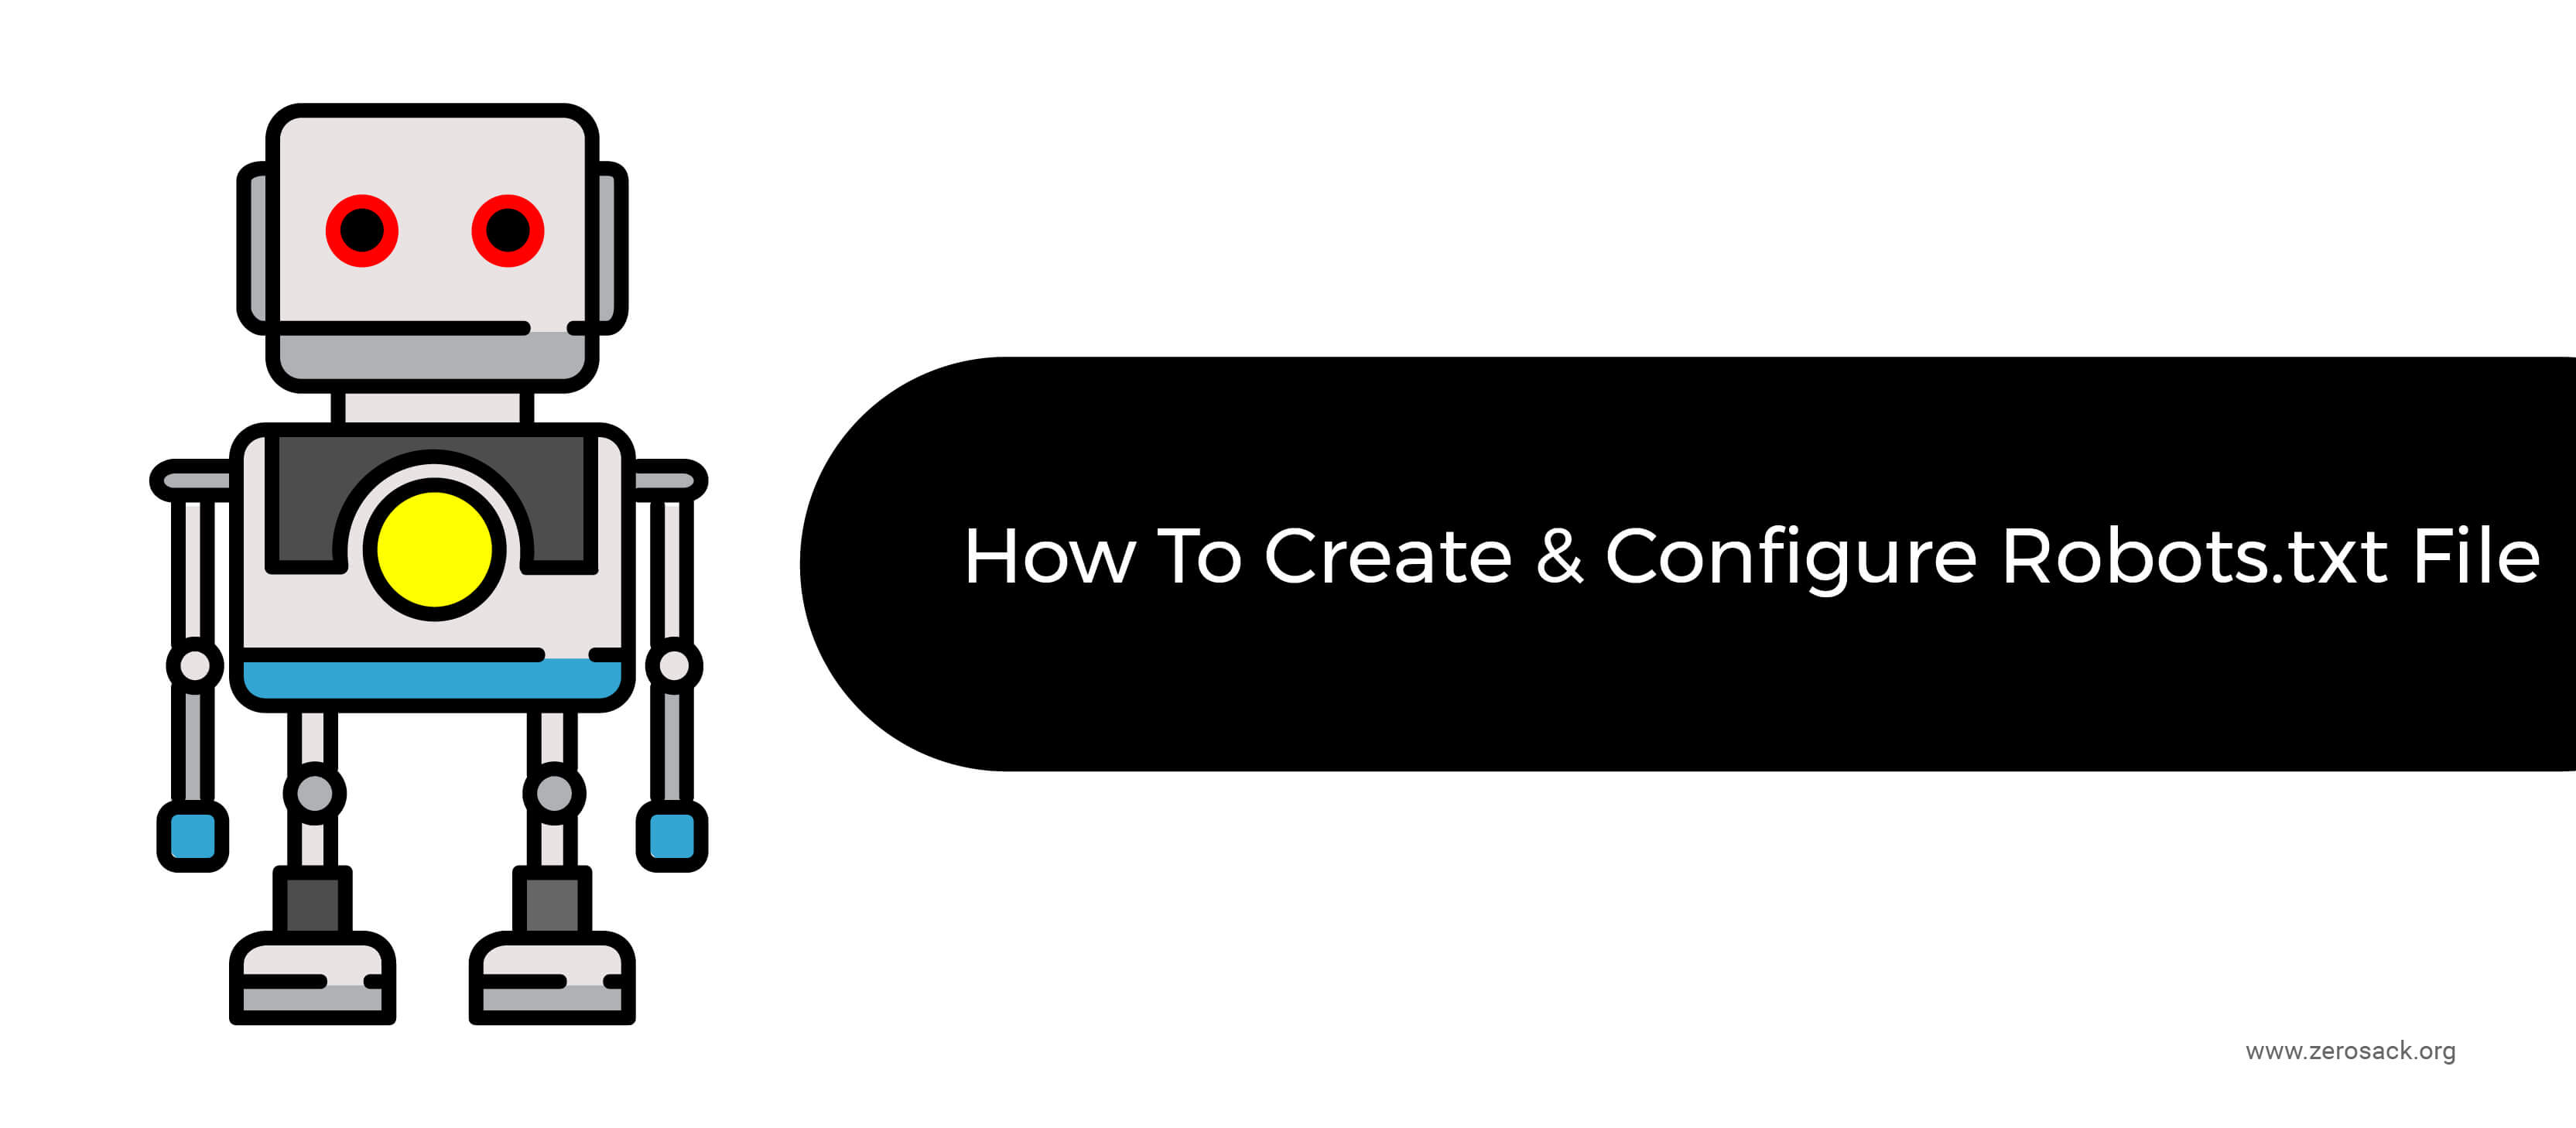 How-to-create-and-configure-robots.txt-file